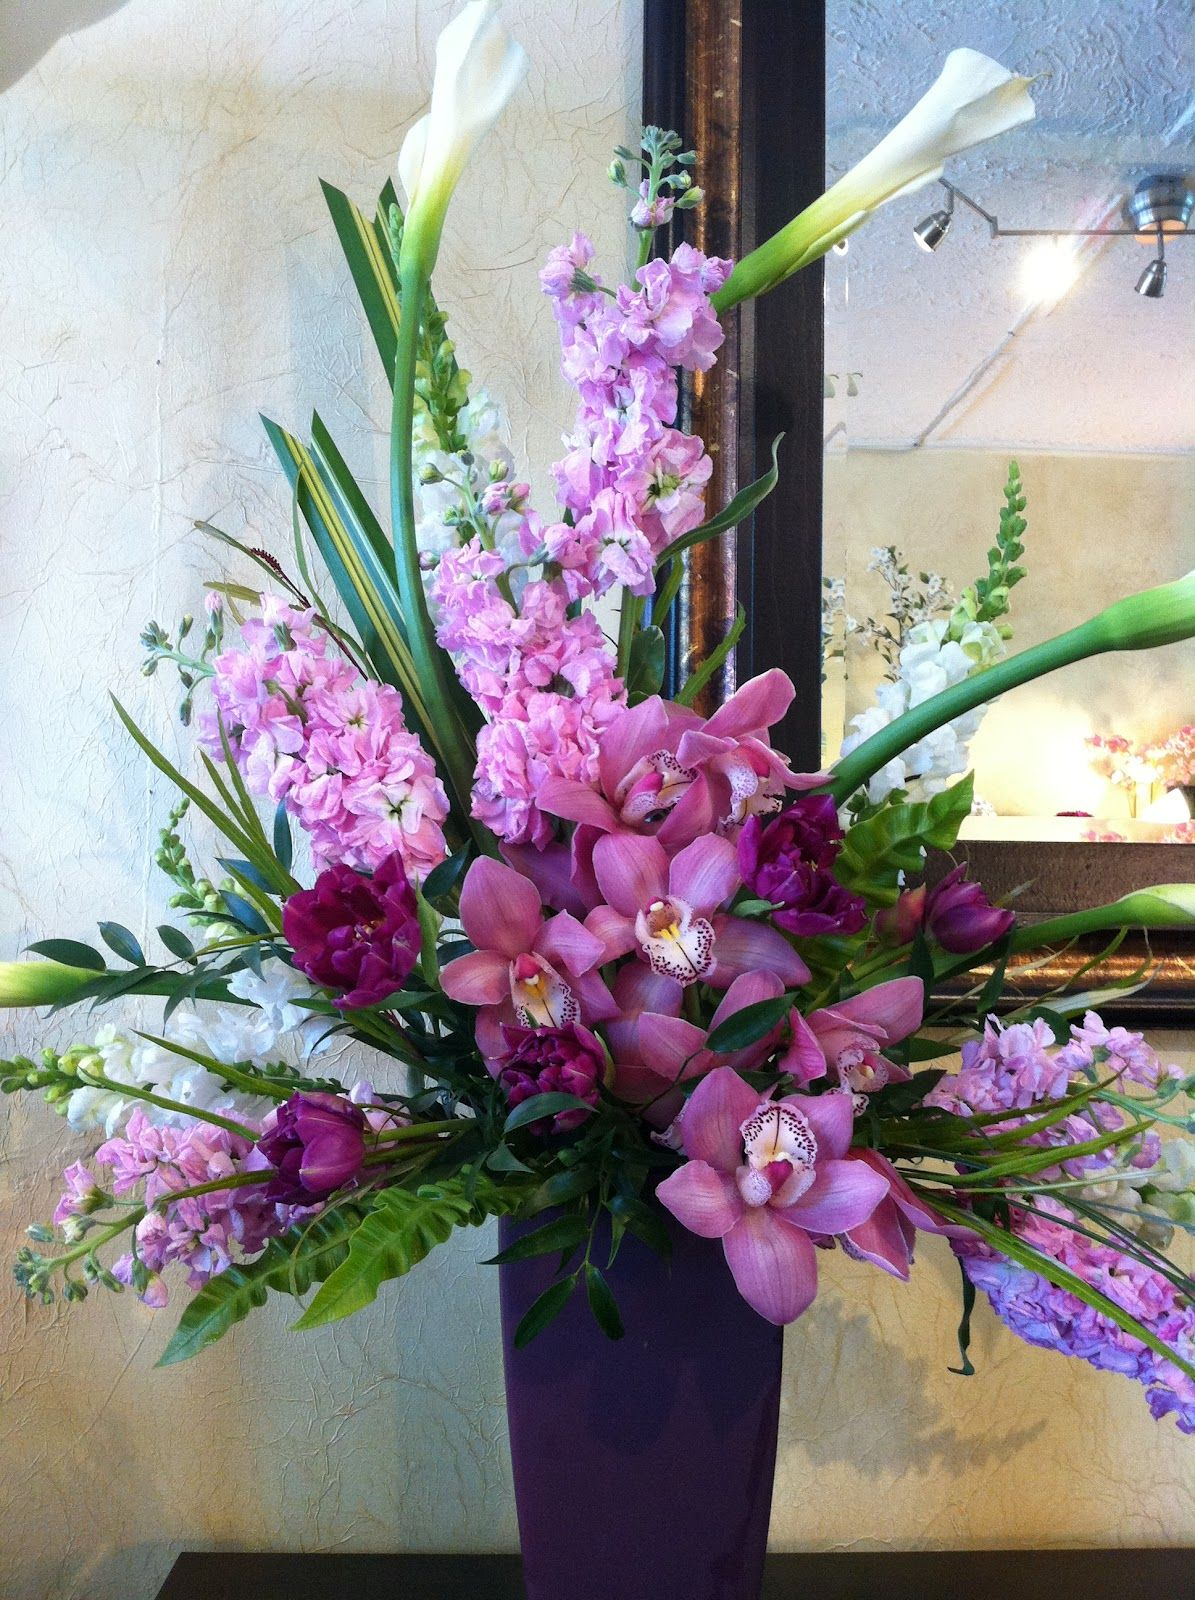 Pin by Nicole Catatao on Floral design